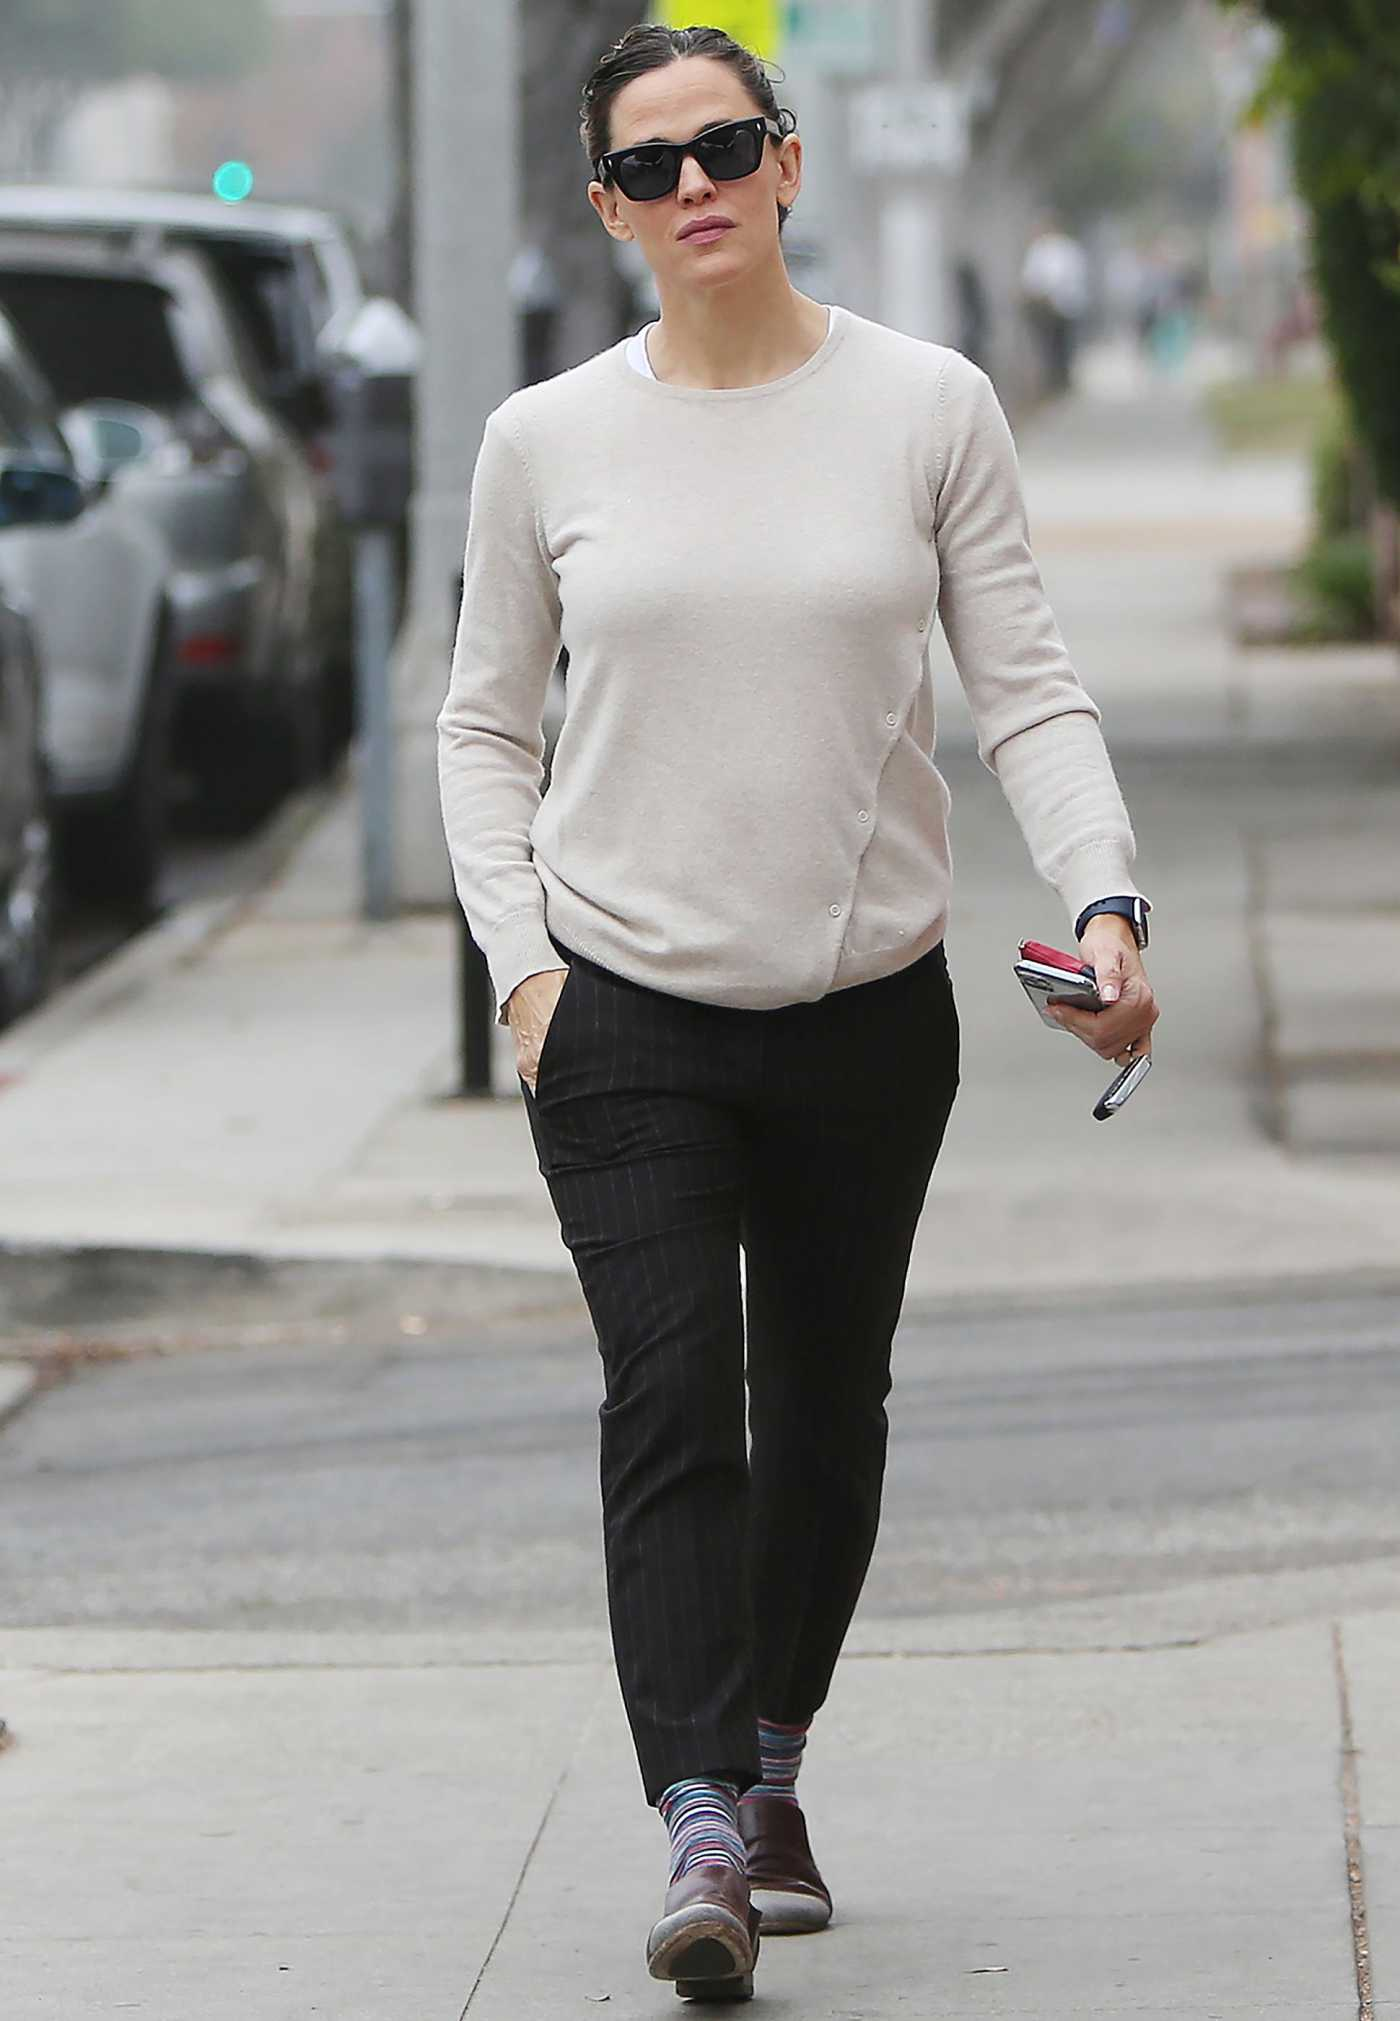 Jennifer Garner in a Beige Sweatshirt Was Seen Out in Santa Monica 11/06/2019